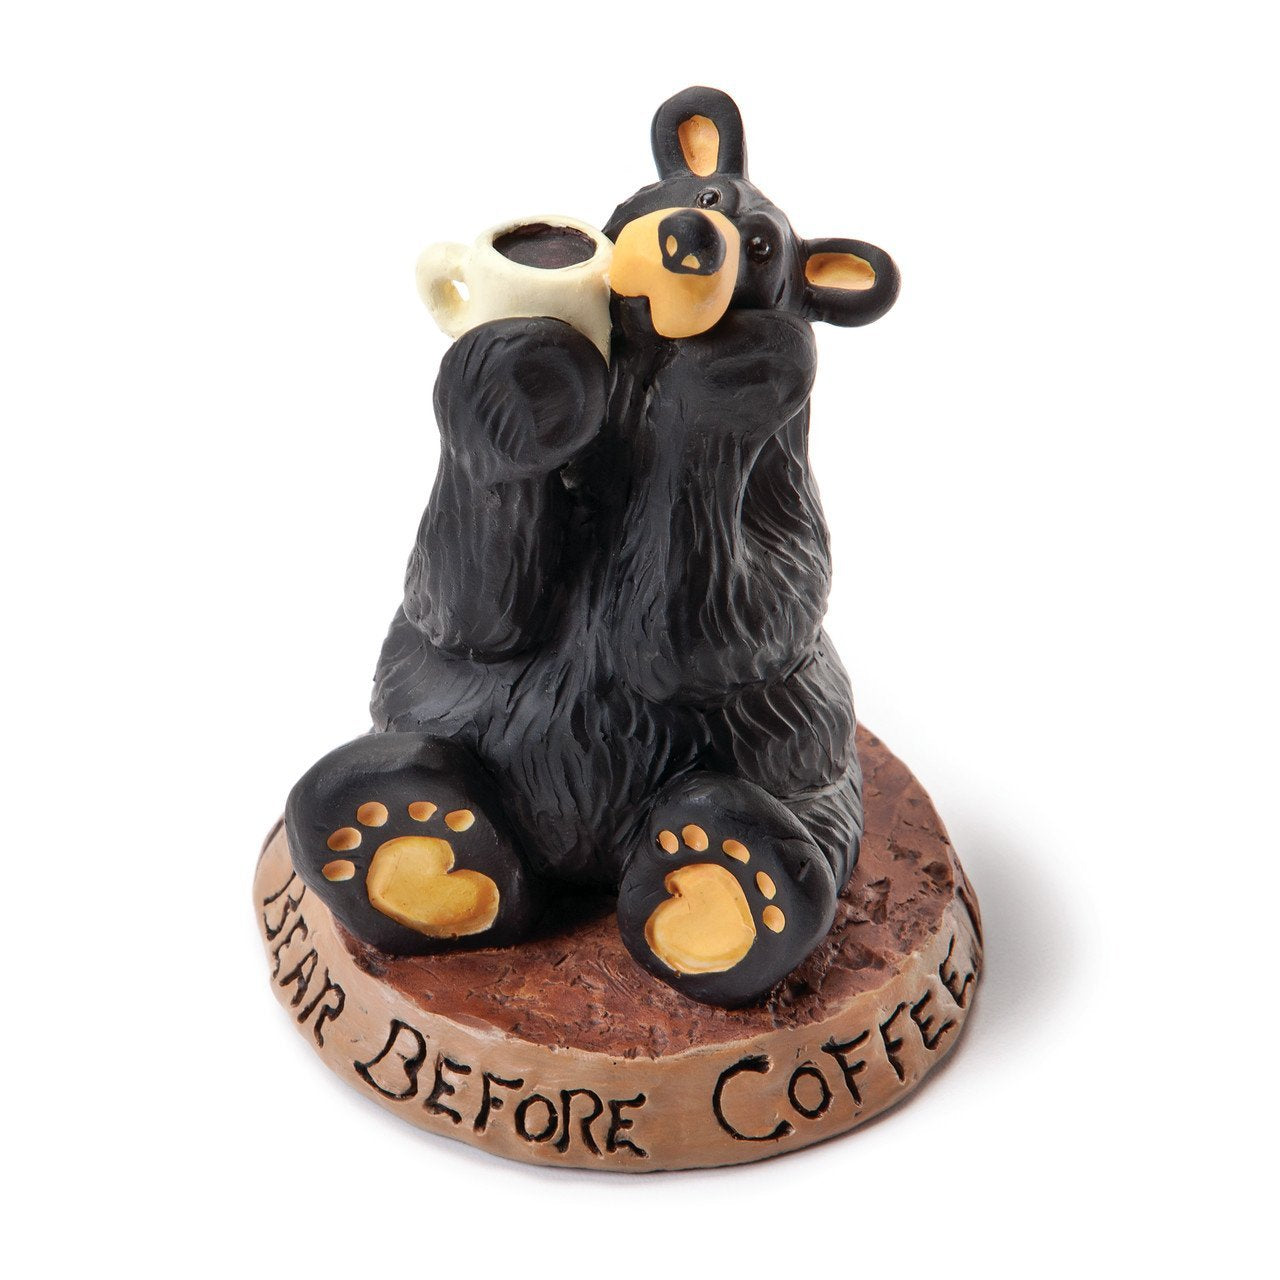 Coffee Bear Black Bear Hand-cast Resin Figurine Sculpture